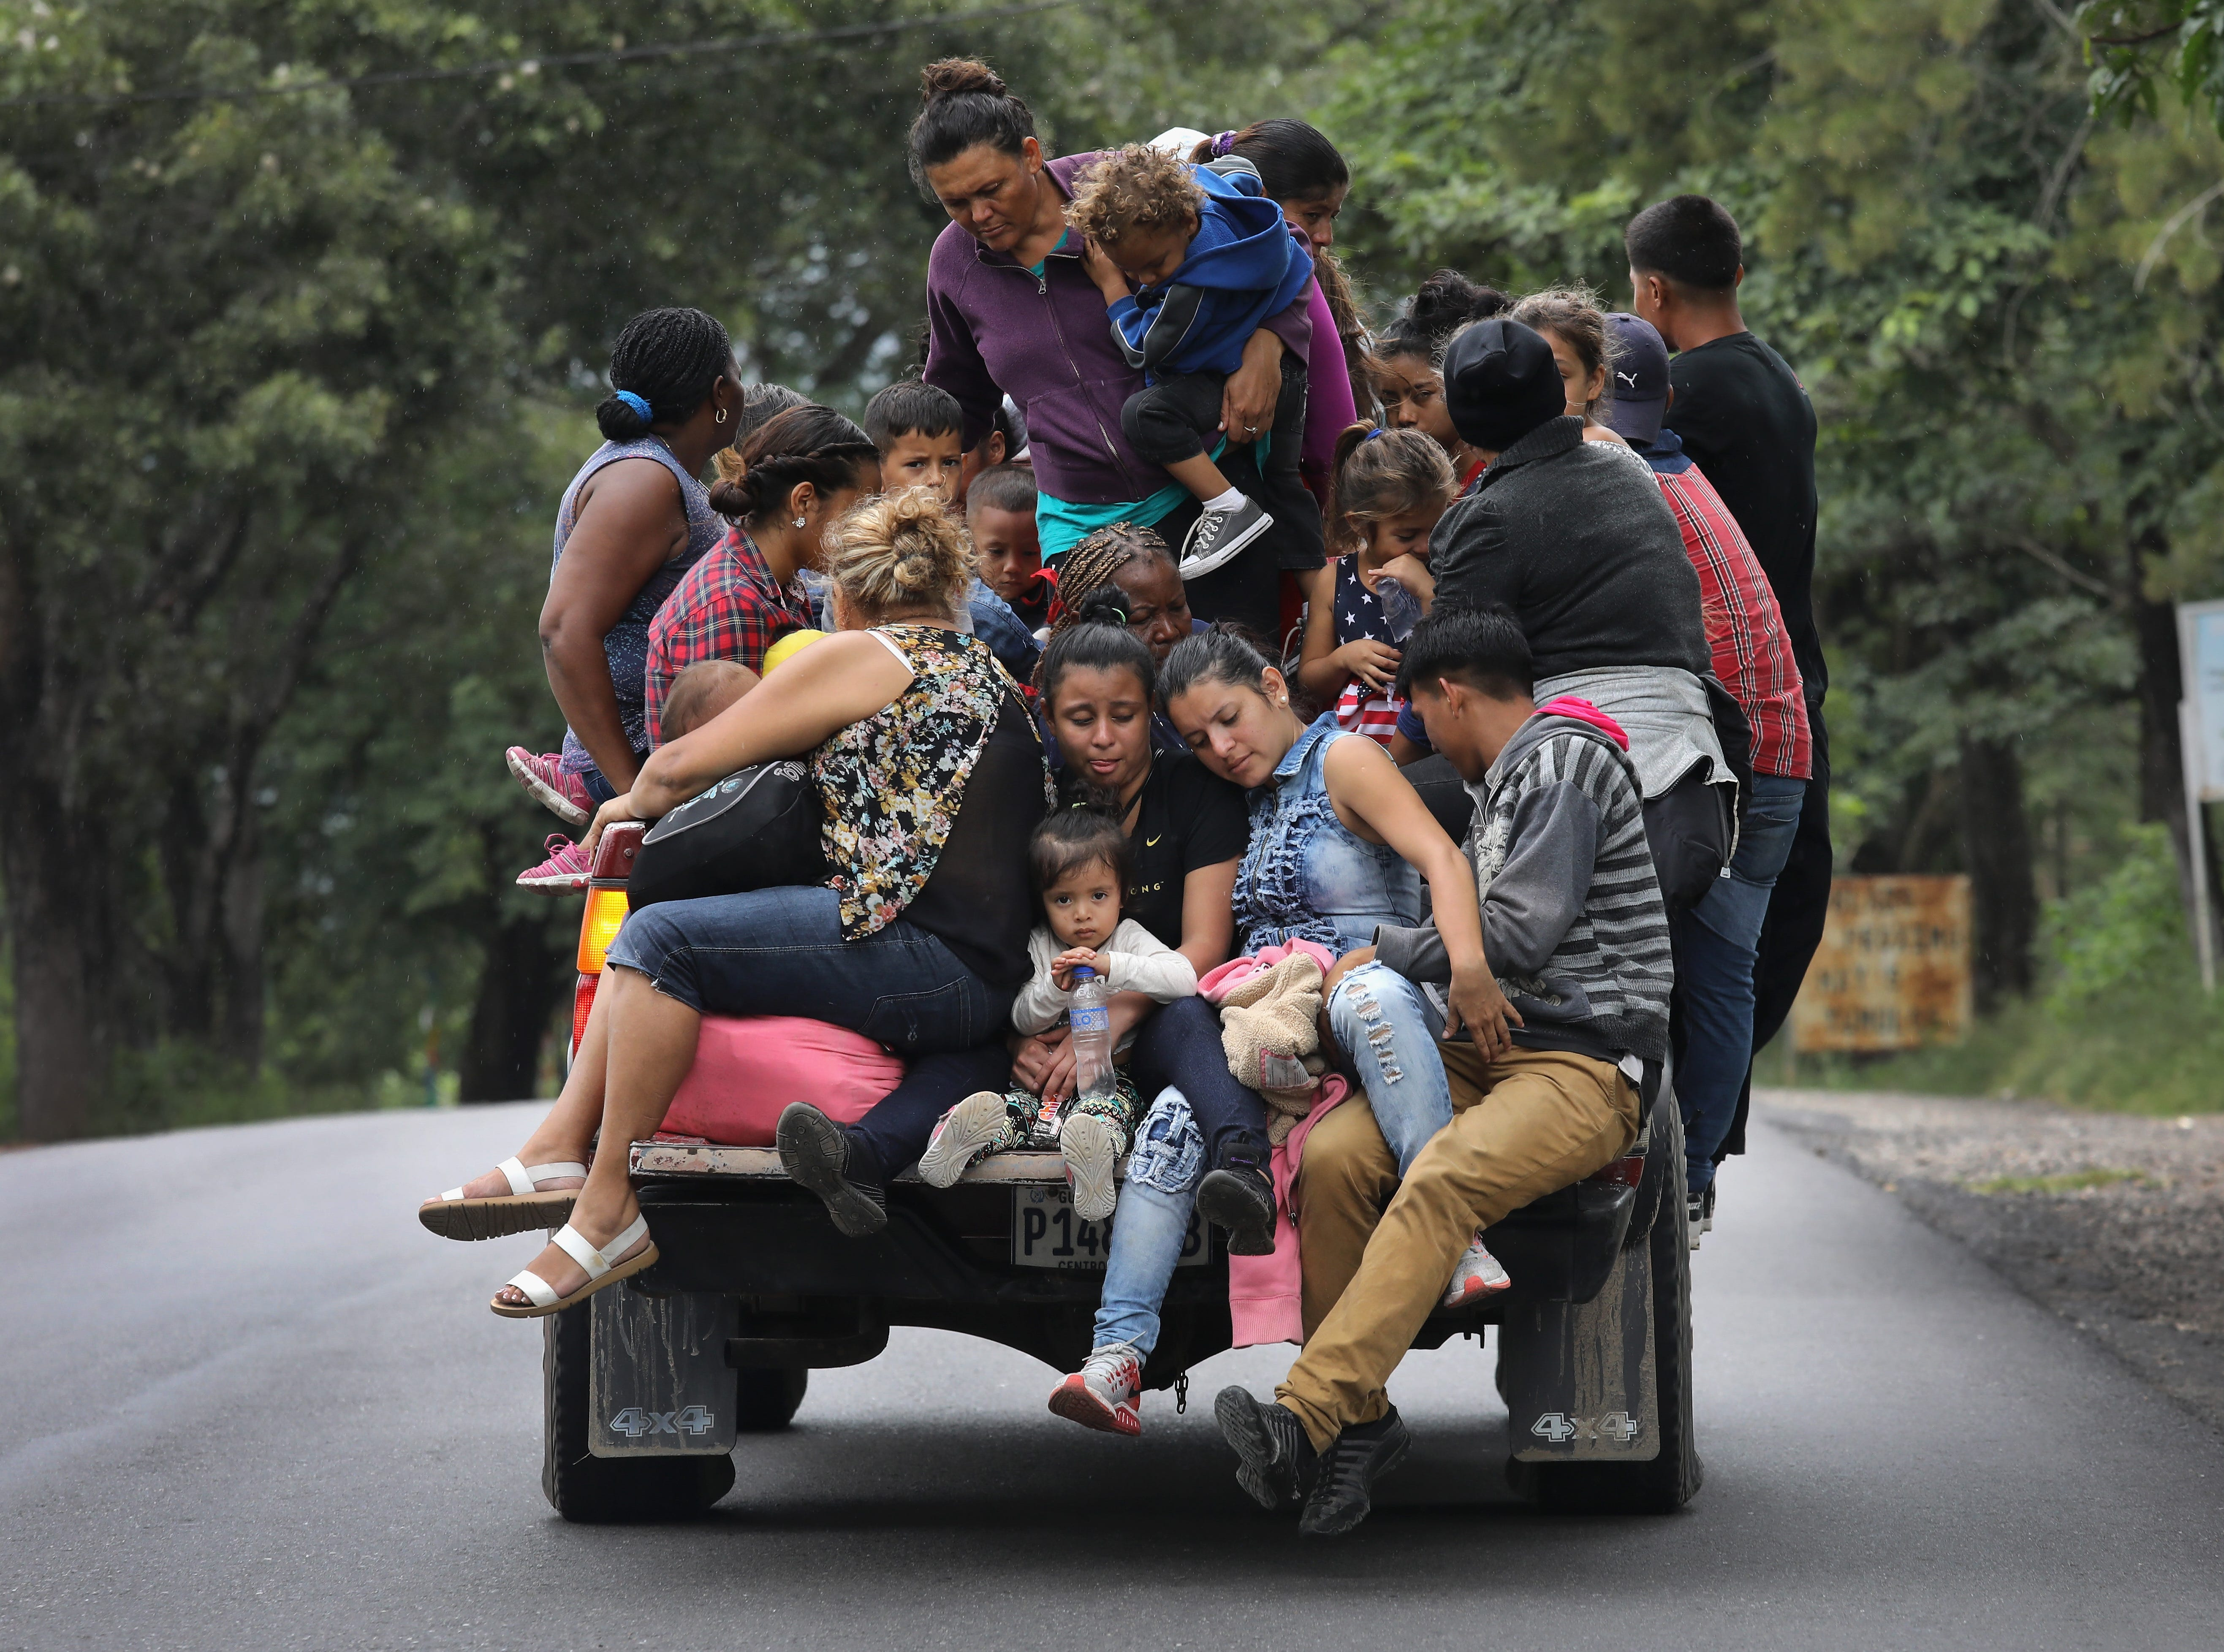 QUEZALTEPEQUE, GUATEMALA - OCTOBER 16:  Honduran immigrants, some of more than 1,500 people in a migrant caravan, travel north on October 16, 2018 near Quezaltepeque, Guatemala. The caravan, the second of its size in 2018, began last week in San Pedro Sula, Honduras with plans to march north through Guatemala and Mexico in route to the United States.  (Photo by John Moore/Getty Images)